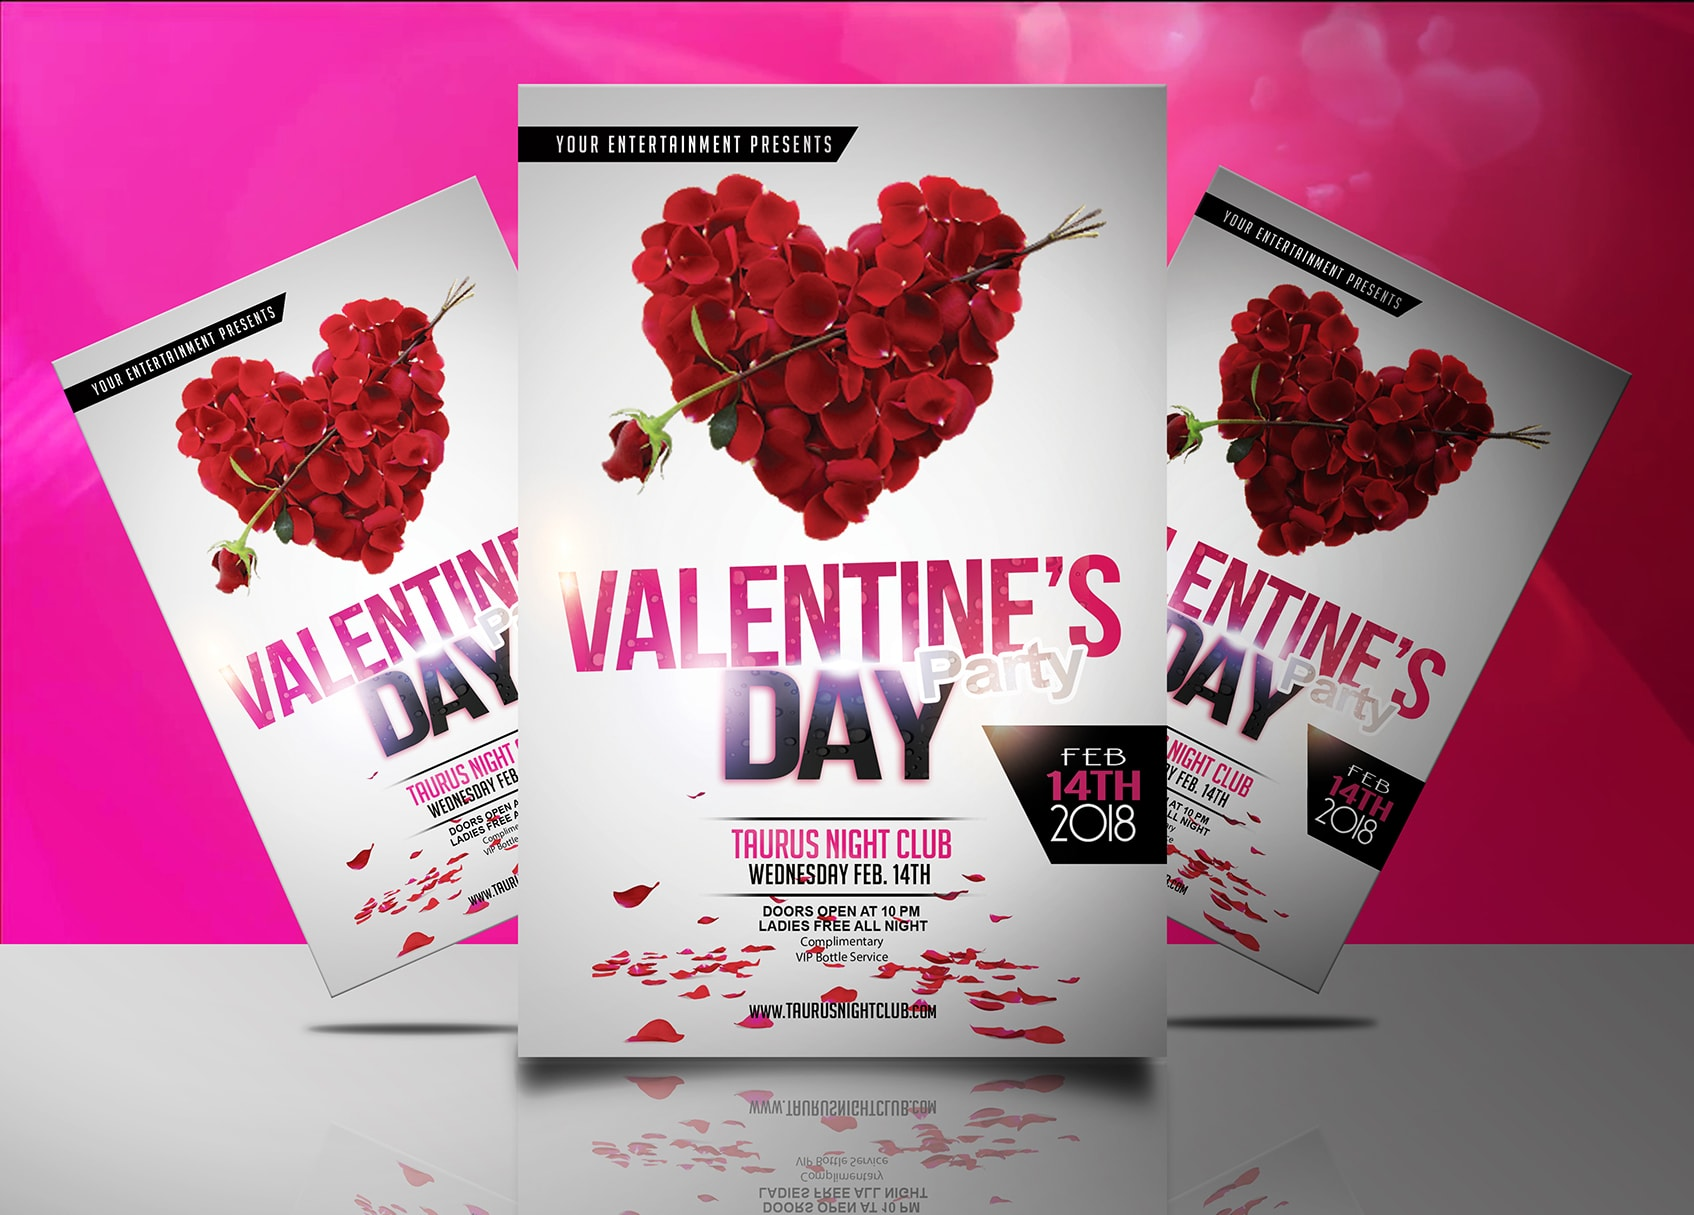 Valentines Day Party Flyer Template Jaf Creative Studios